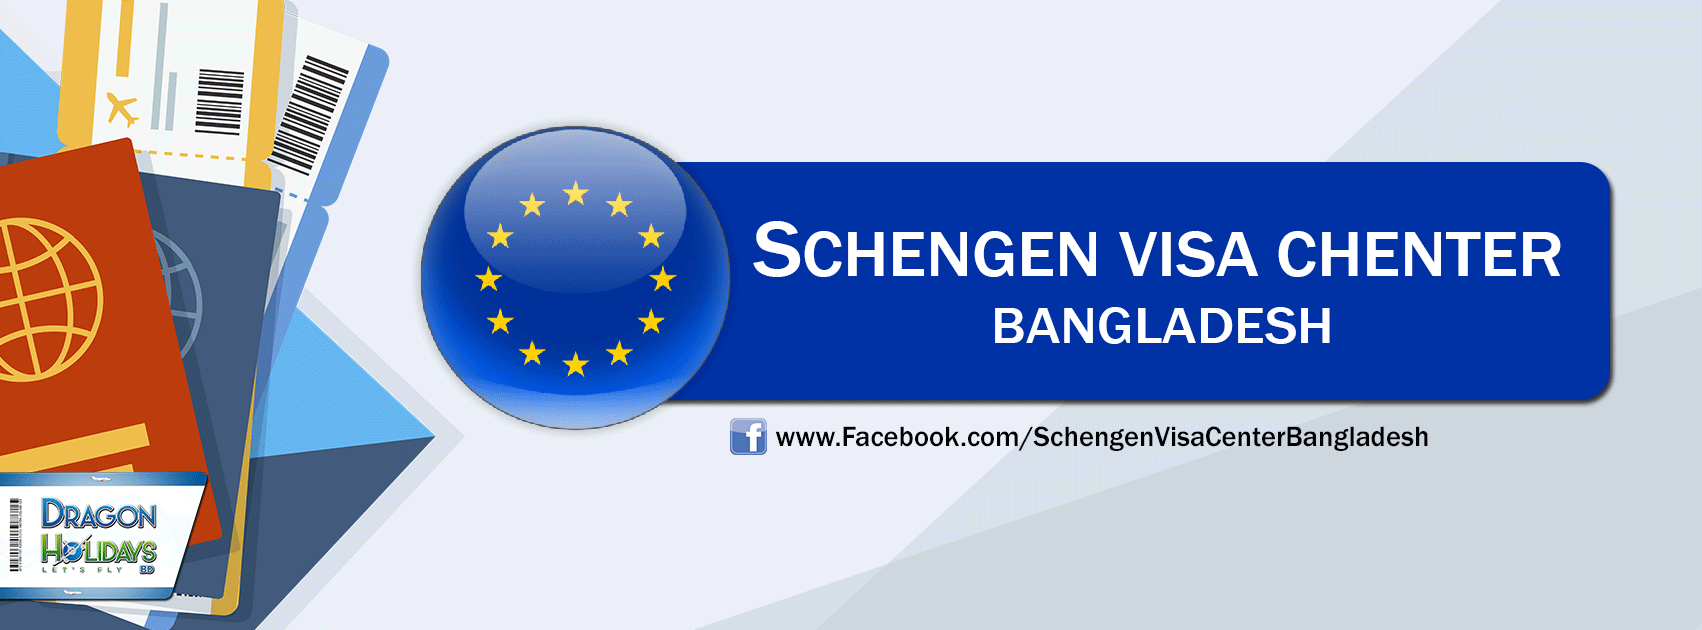 schengen-fb-cover-page-new-visa